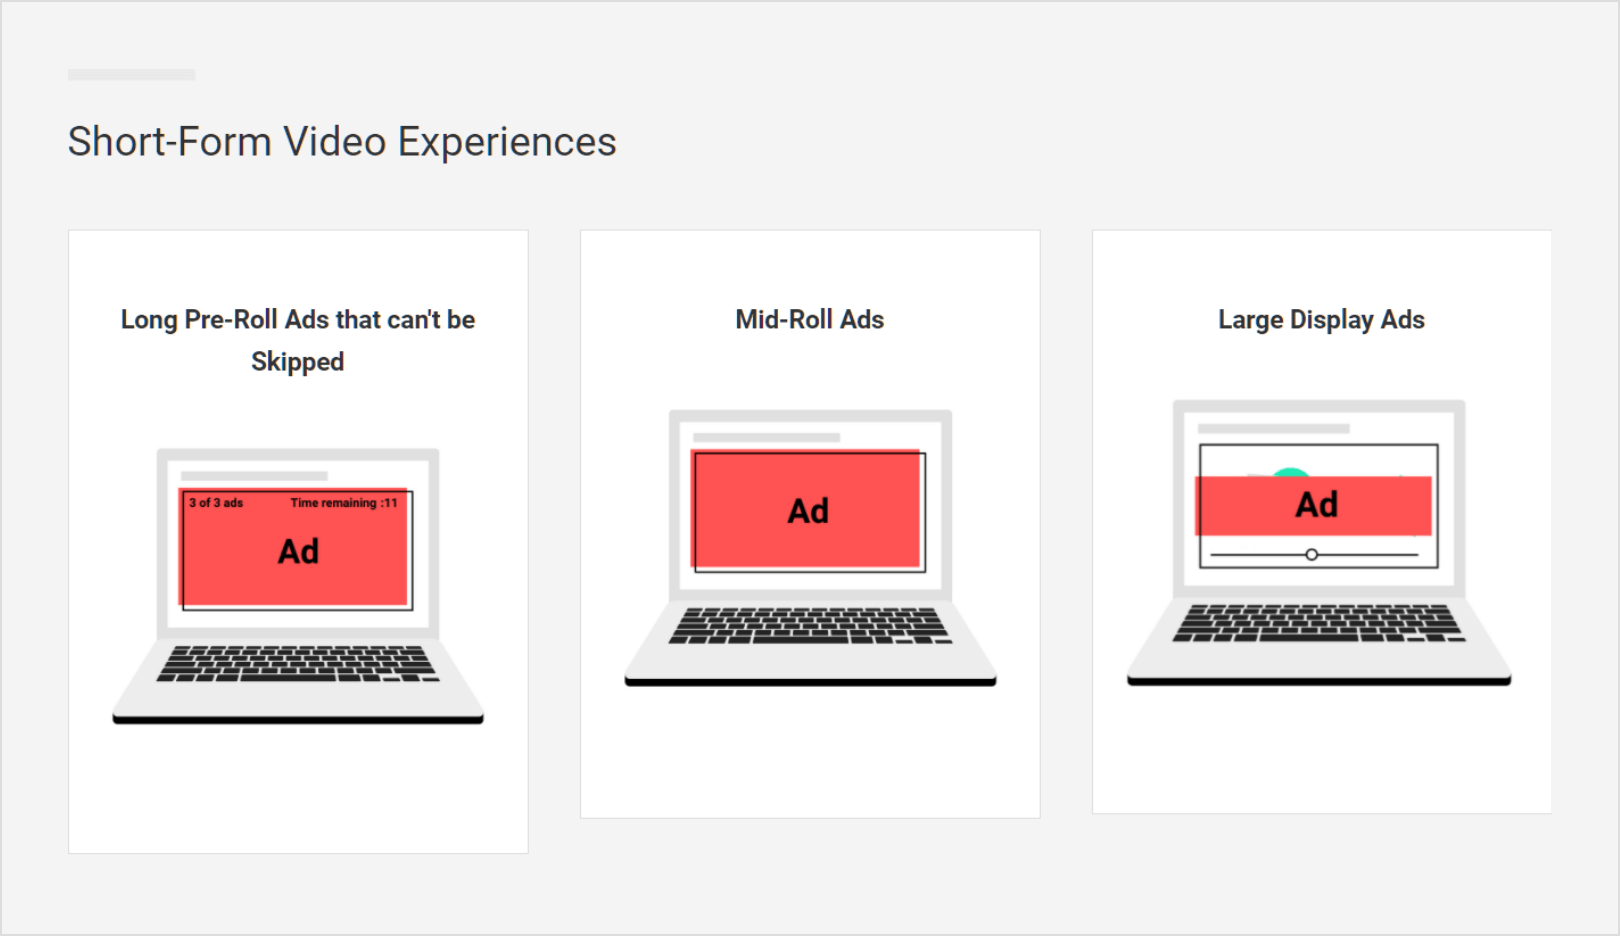 Types of Ad Experiences